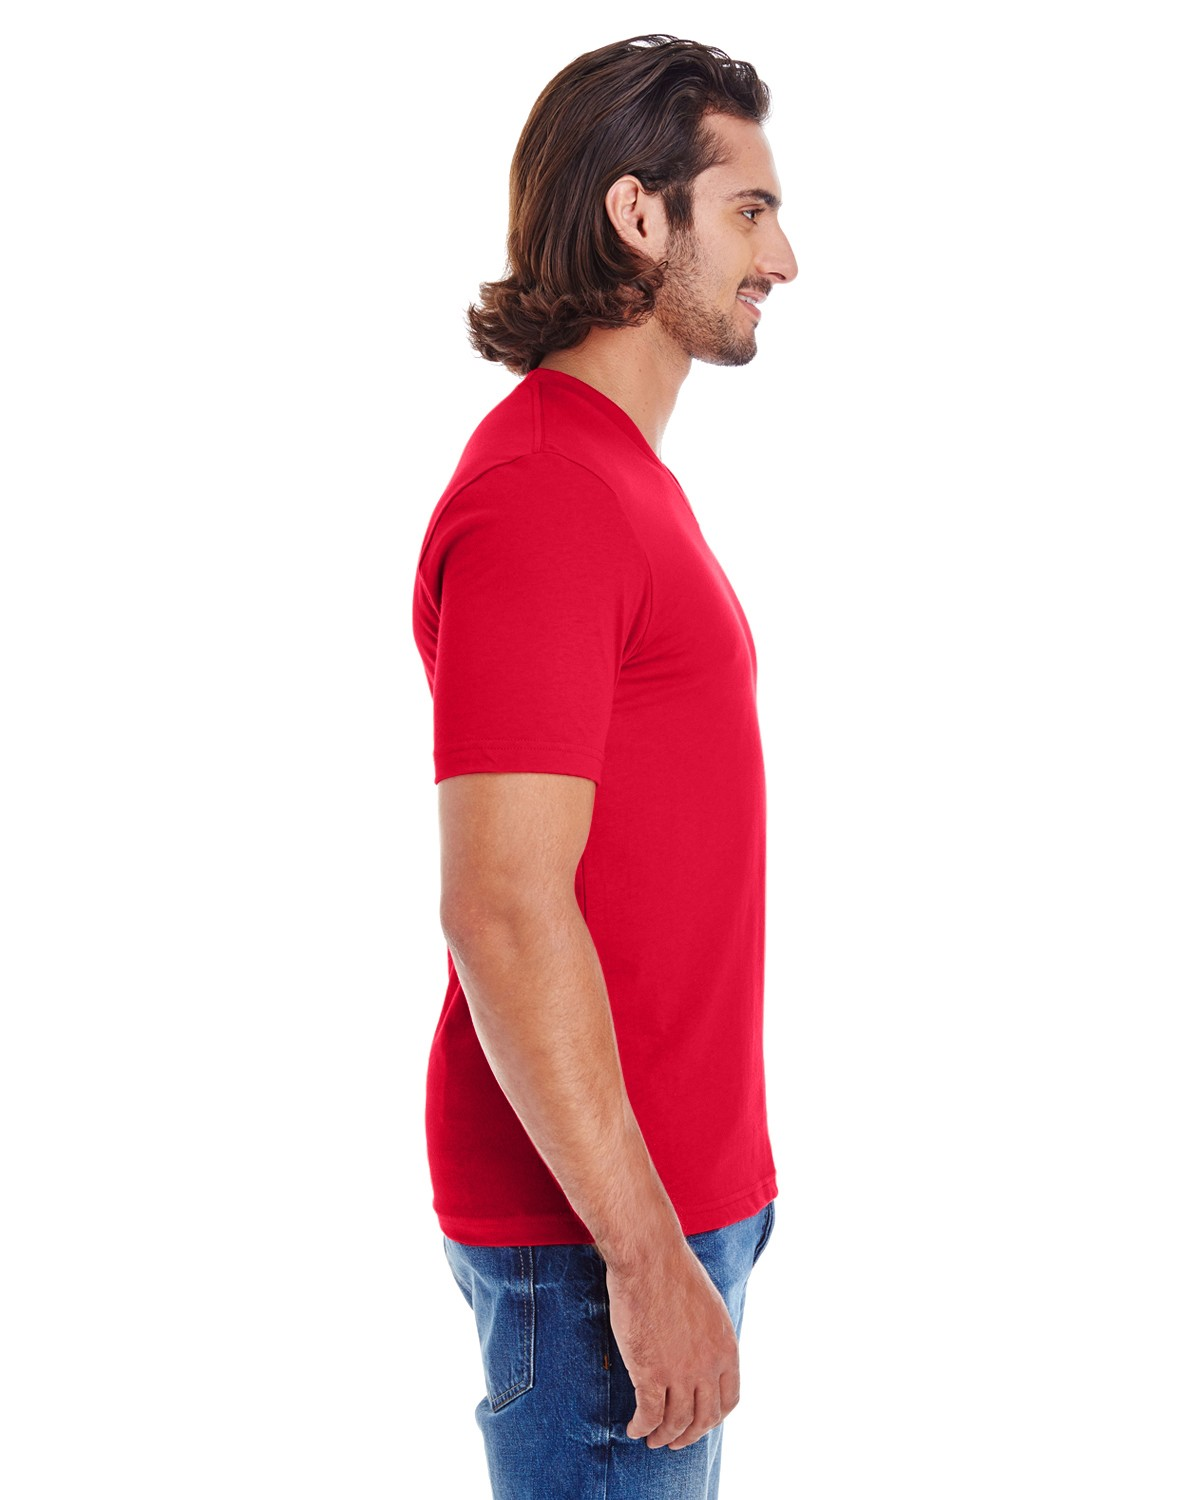 24321W American Apparel RED